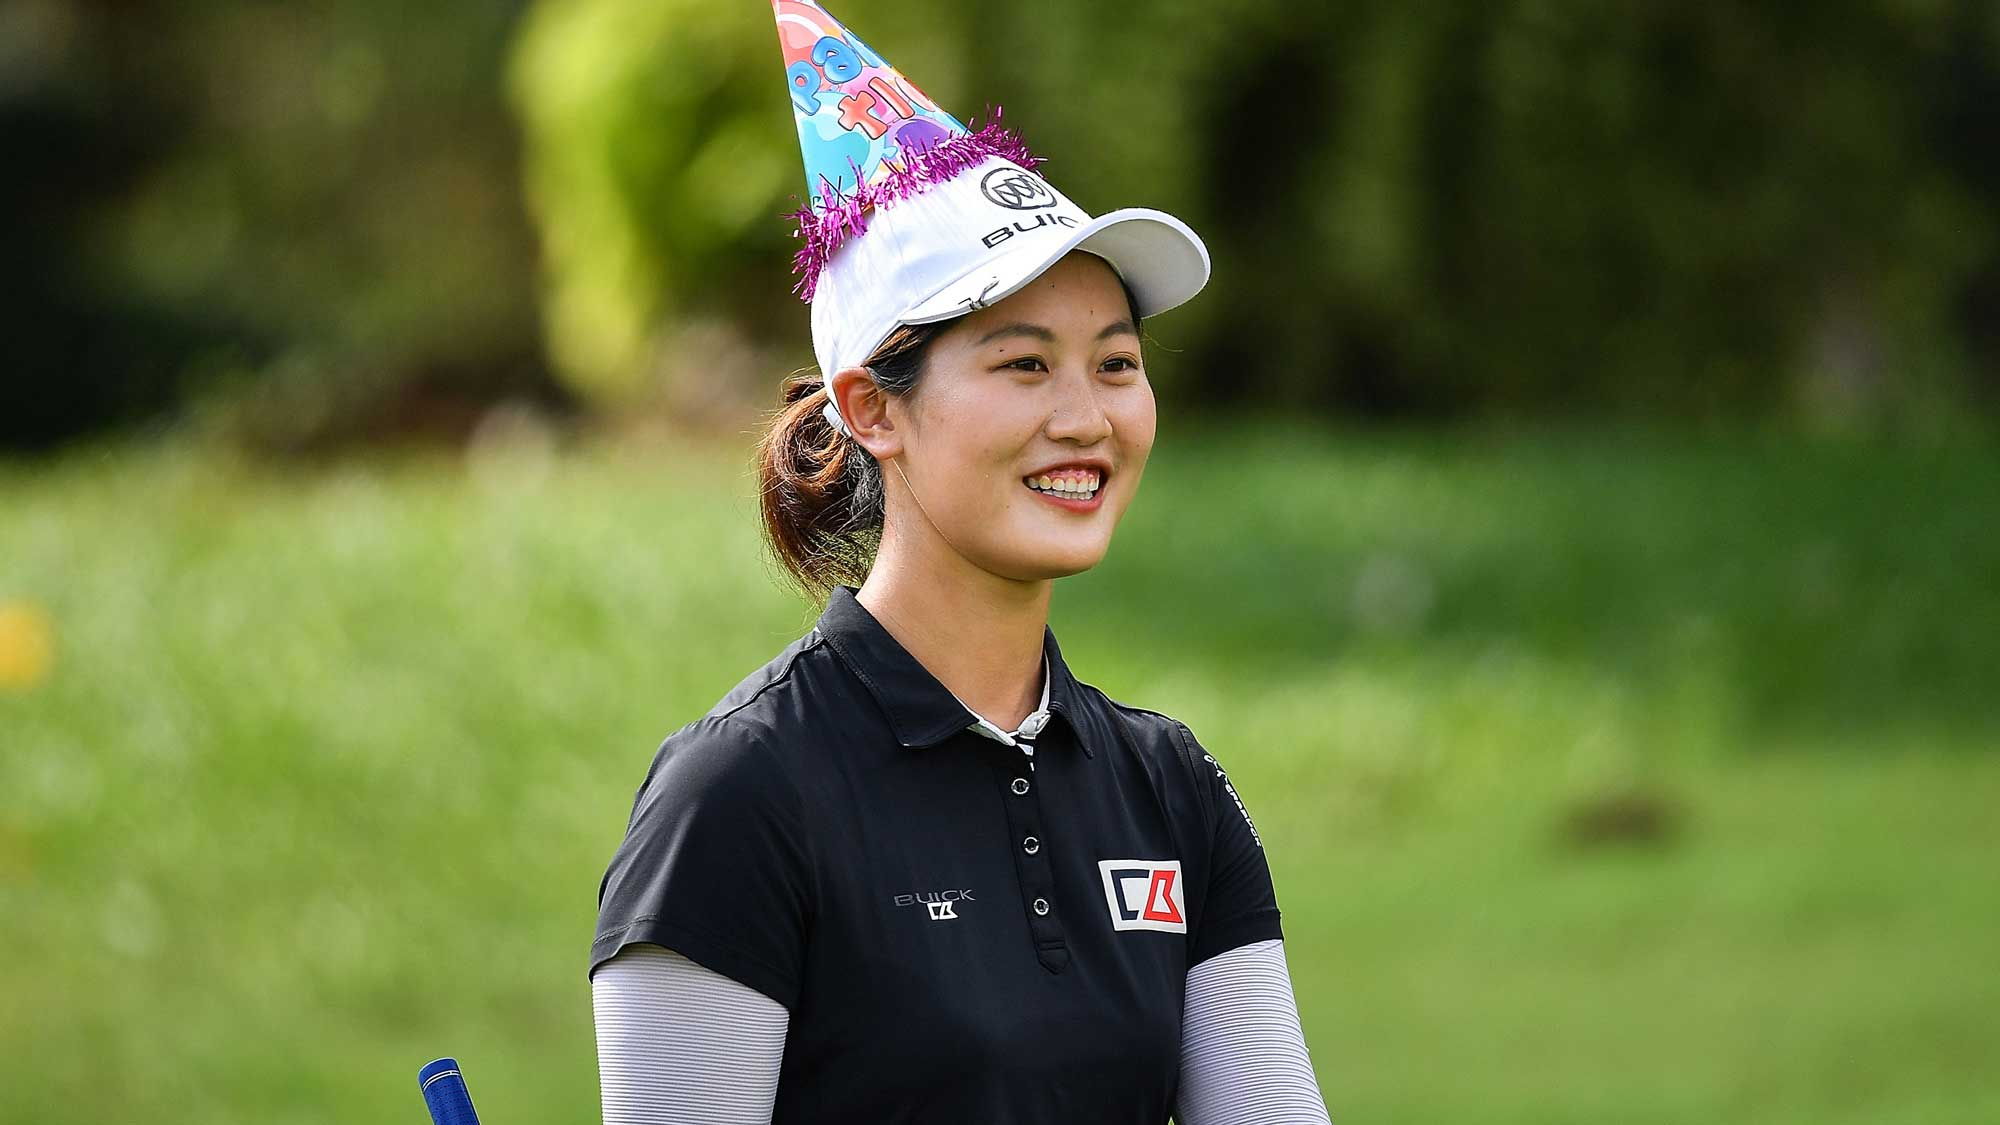 Xi Yu Lin of China wears her birthday 21st celebrate hat during the Honda LPGA Thailand